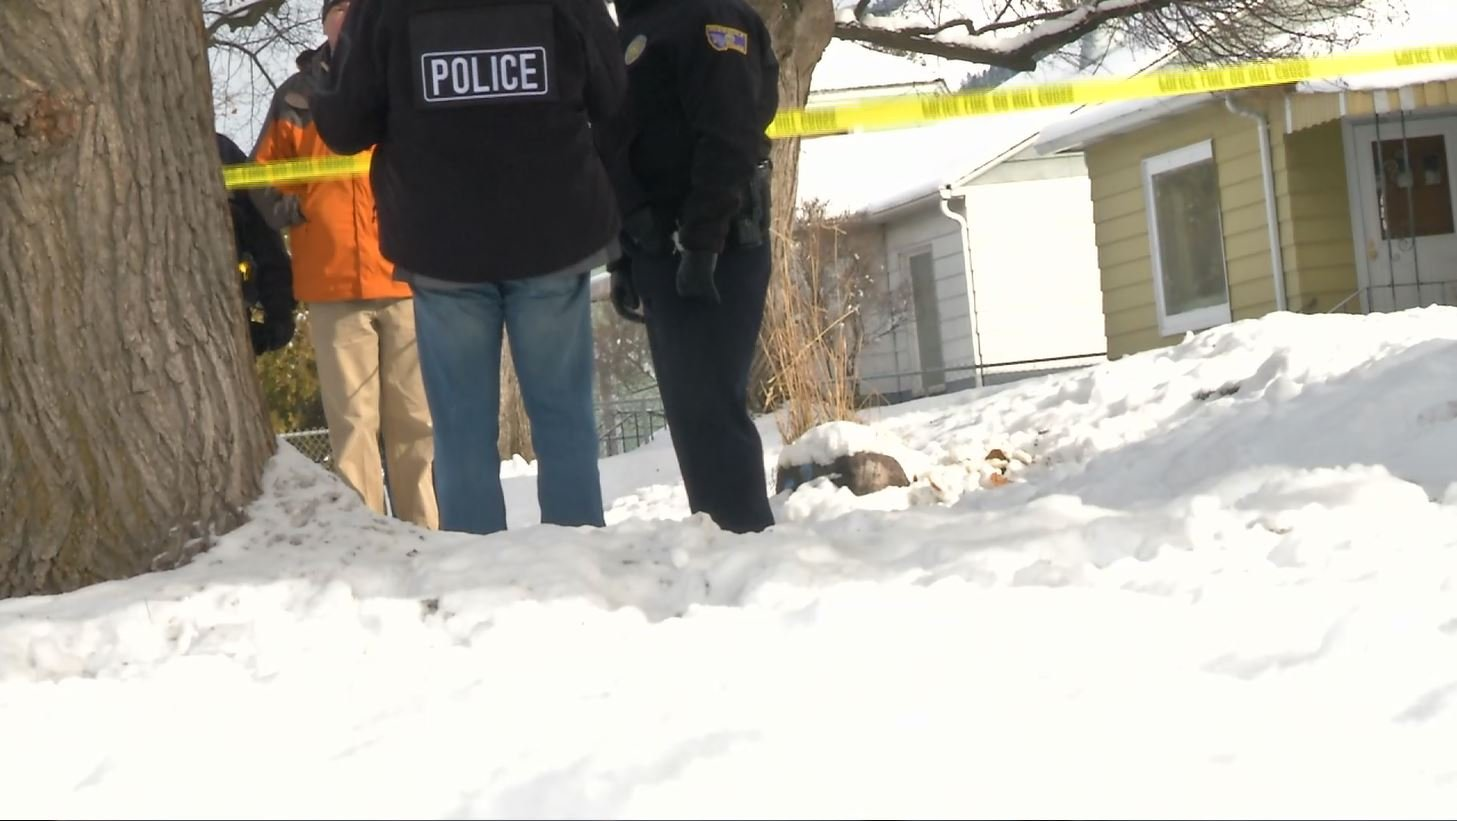 Officers found a knife in the snow along Stephens Avenue this morning. (MTN News photo)